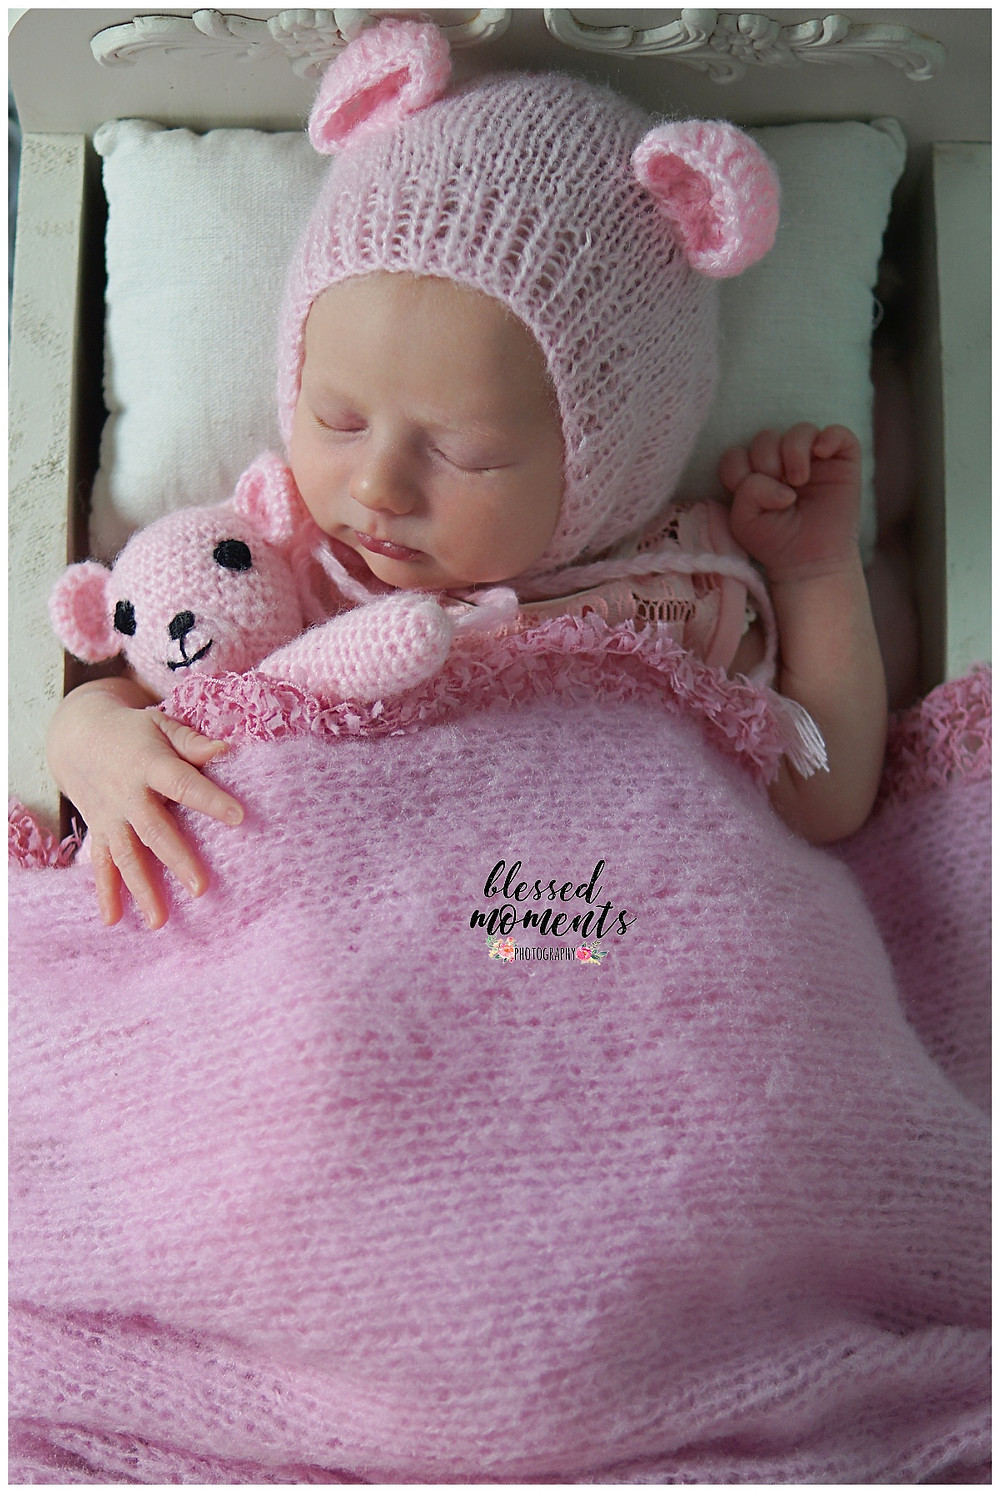 newborn baby girl in a little bed wearing a pink bear bonnet and holding a pink teddy bear.